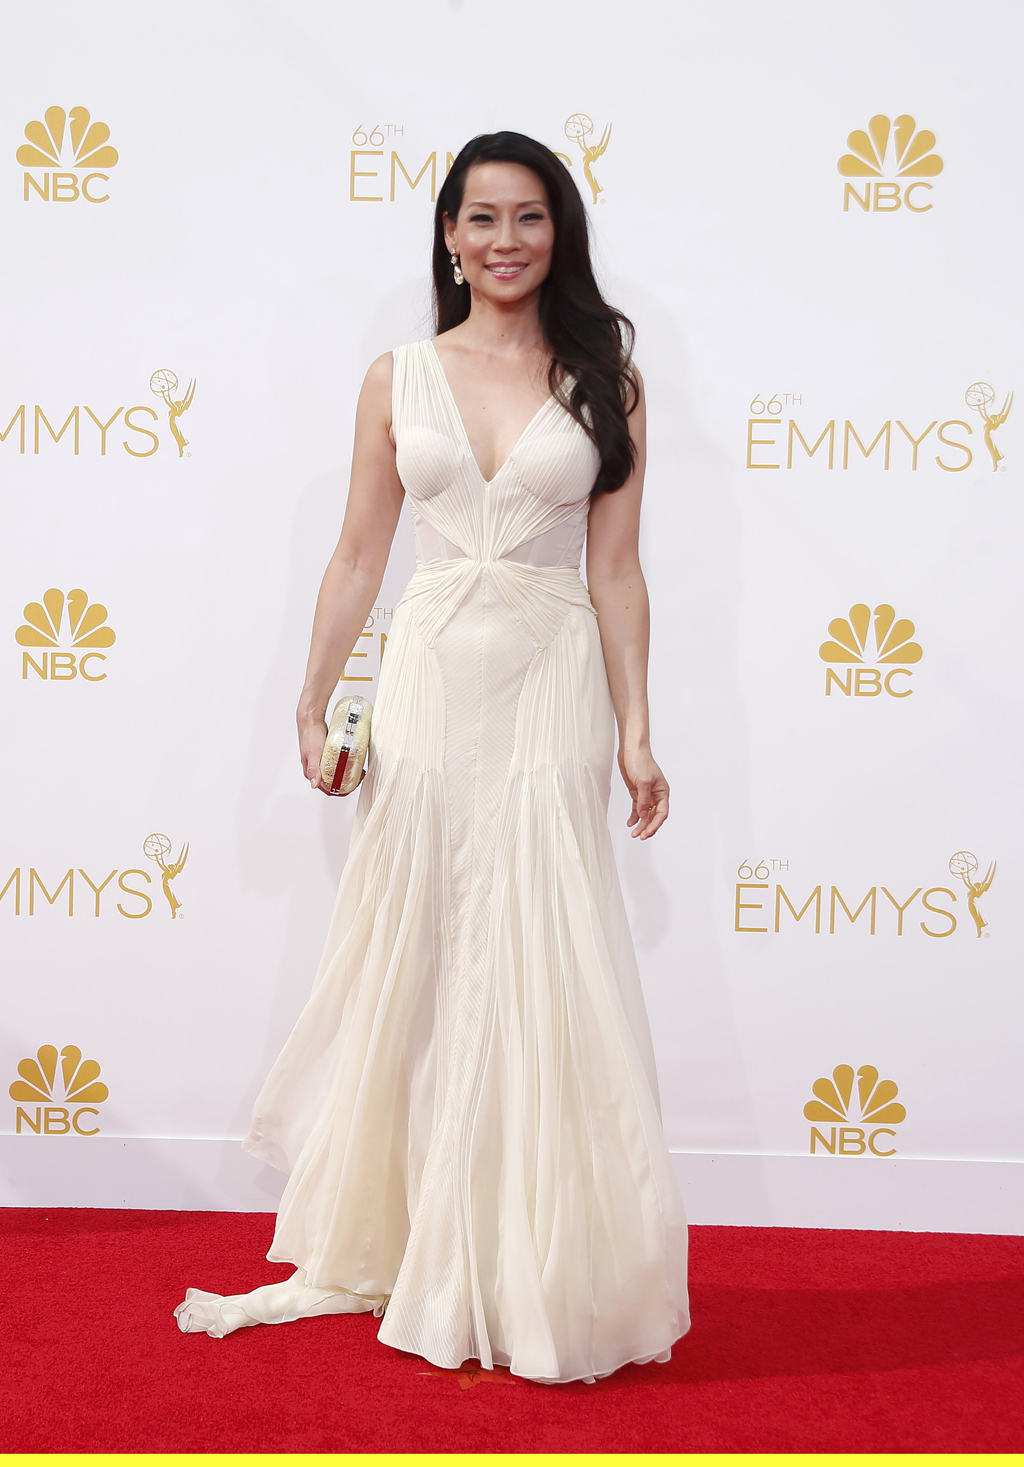 Lucy Liu arrives at the 66th Primetime Emmy Awards in Los Angeles